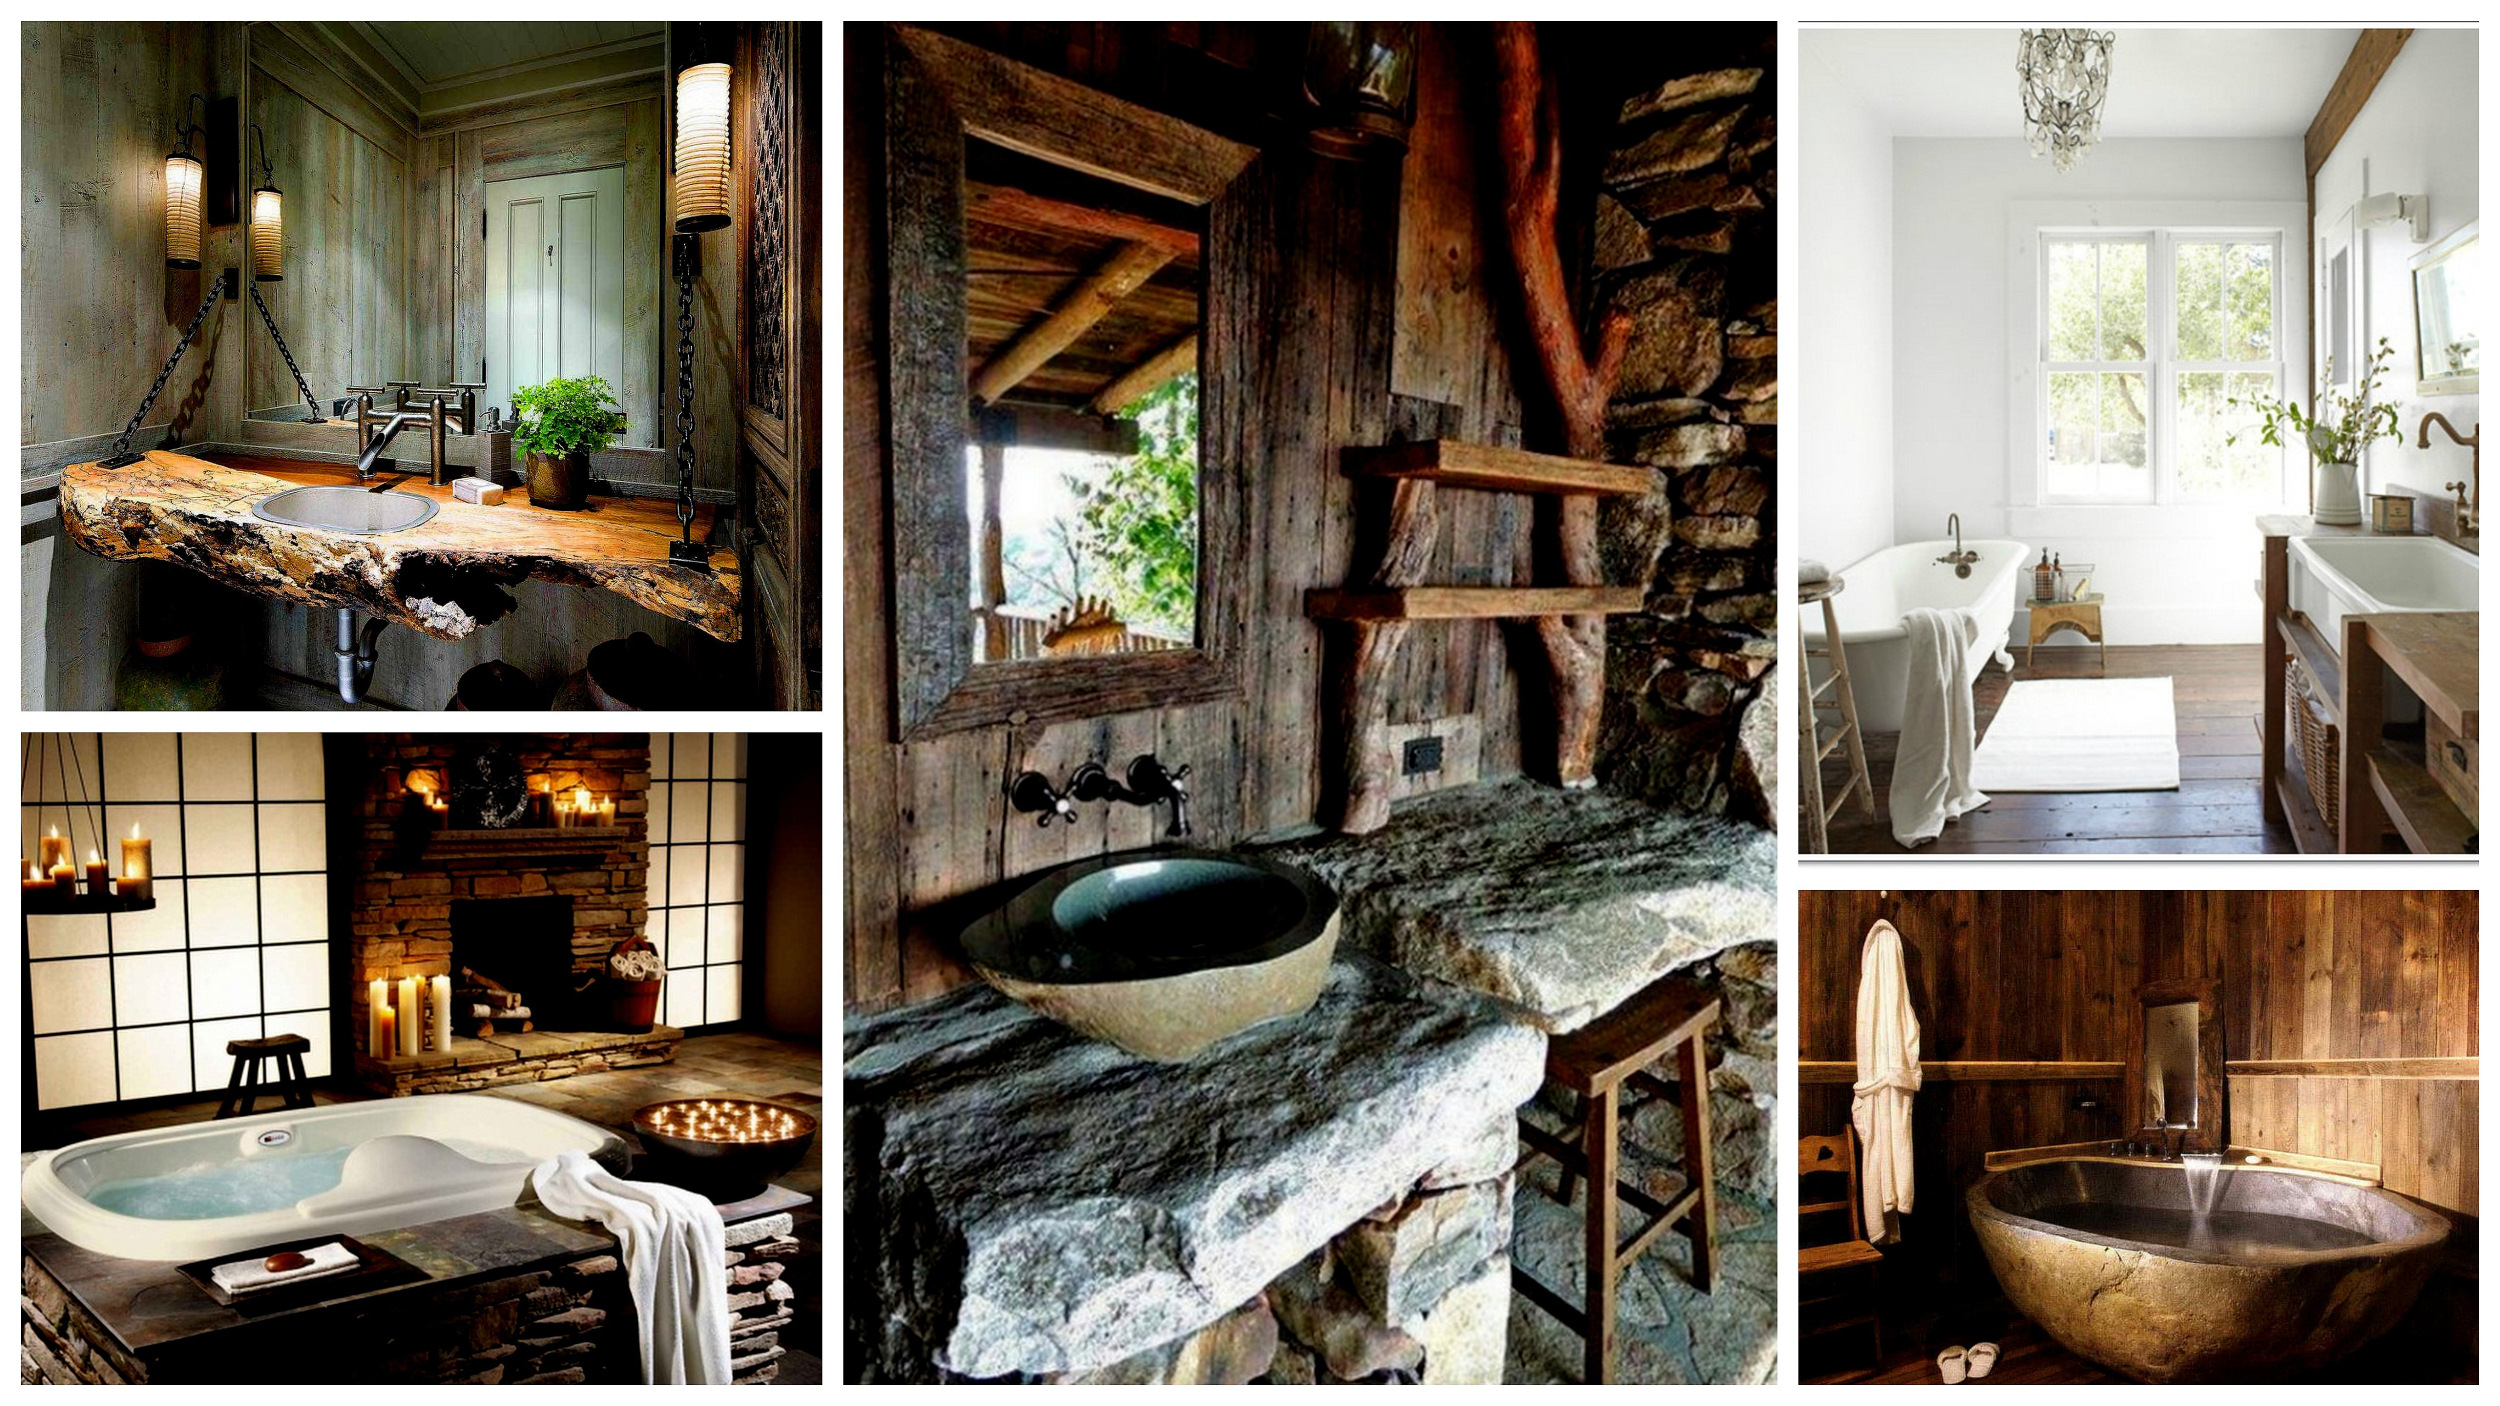 40 Exceptional Rustic Bathroom Designs Filled With Coziness and Warmth